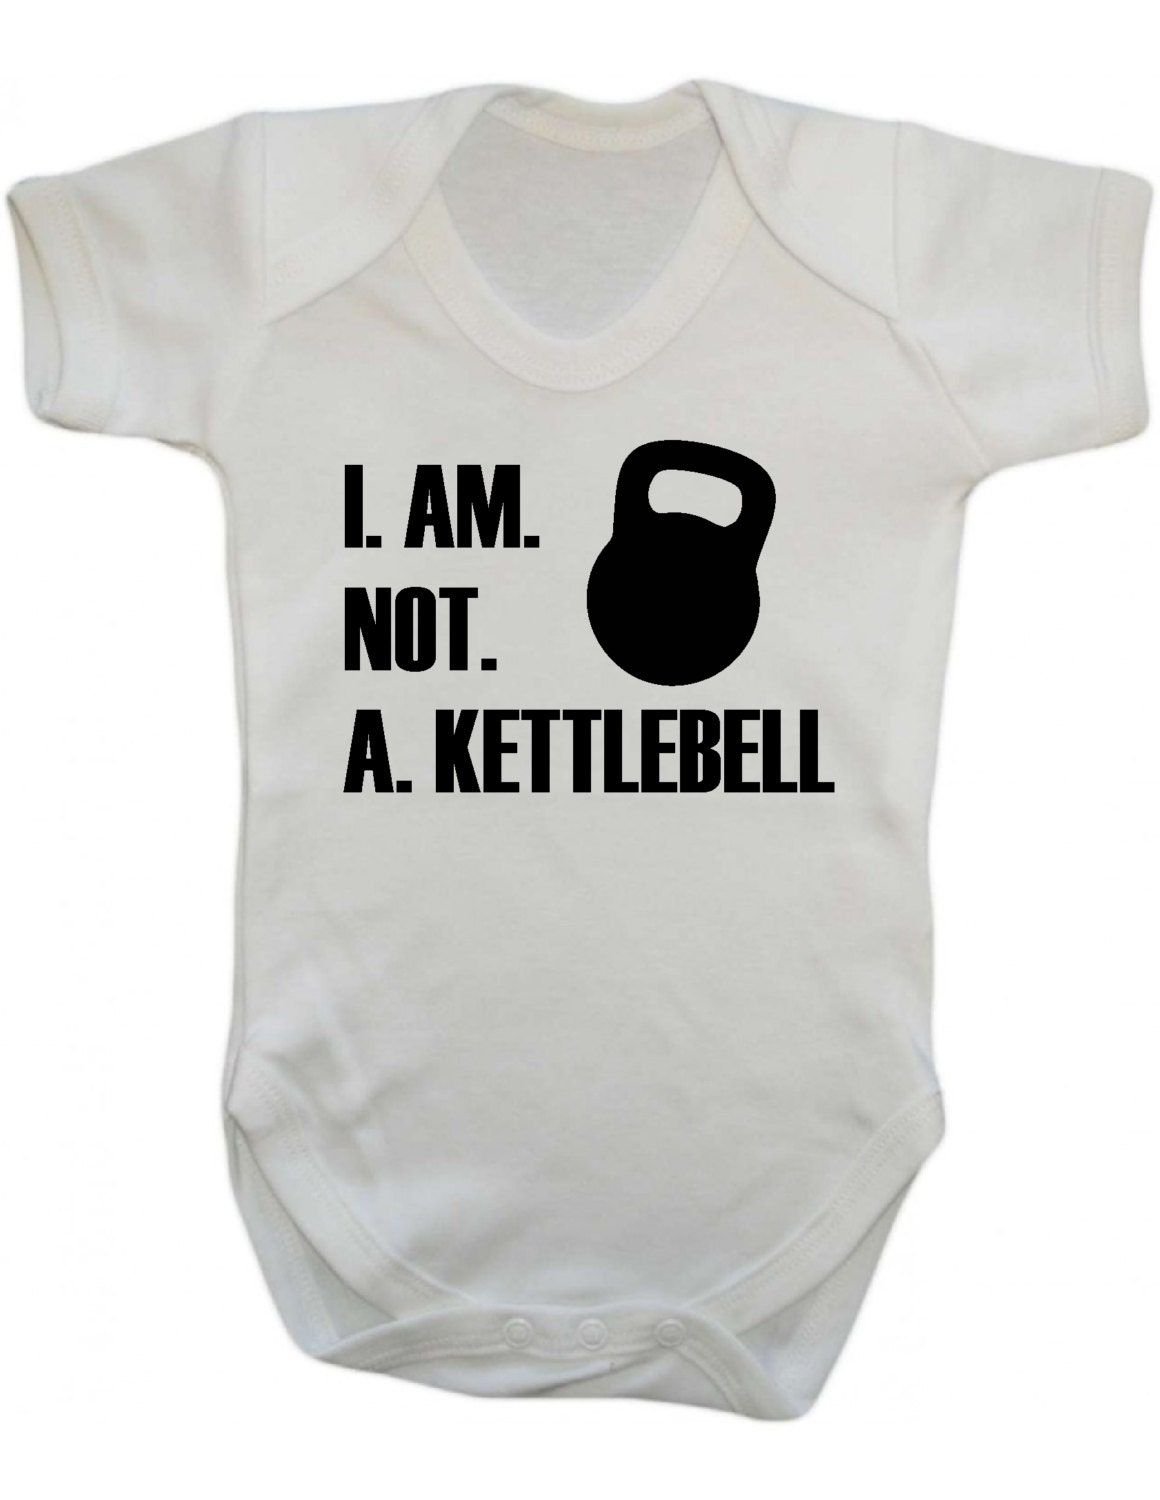 Kettlebell gym babygrow I am not a kettlebell   baby grow vest onsie